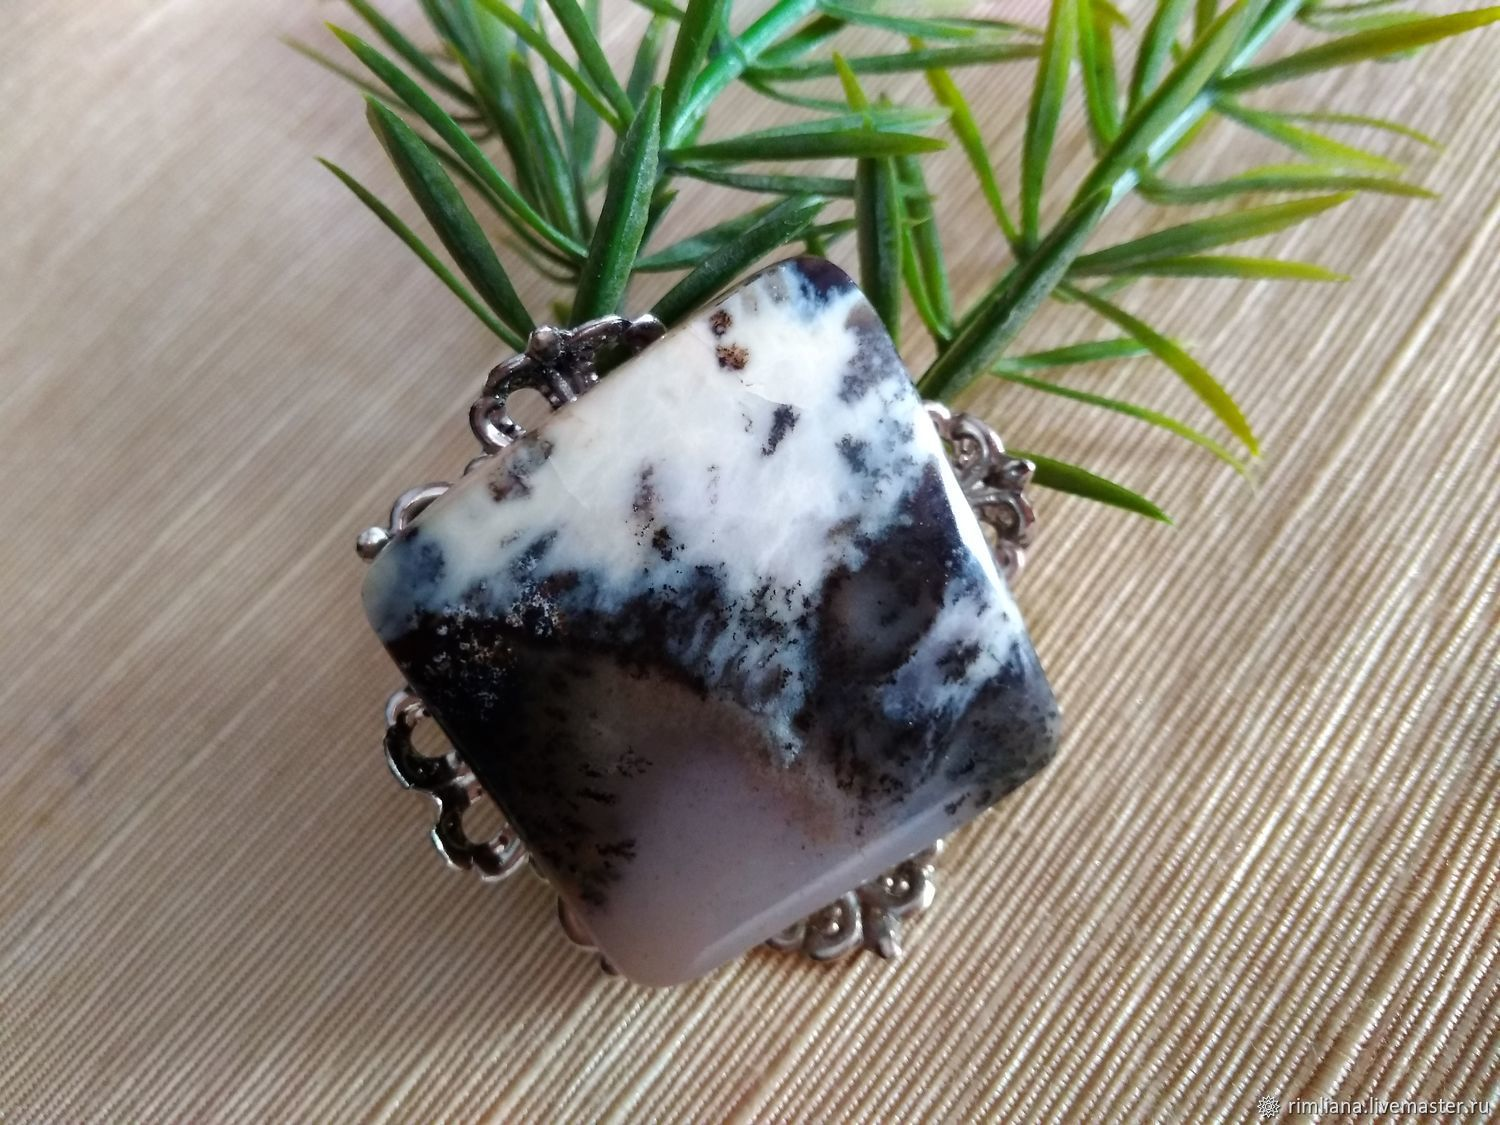 Brooch author's 'Avalanche' Brazilian agate natural, Brooches, Moscow,  Фото №1